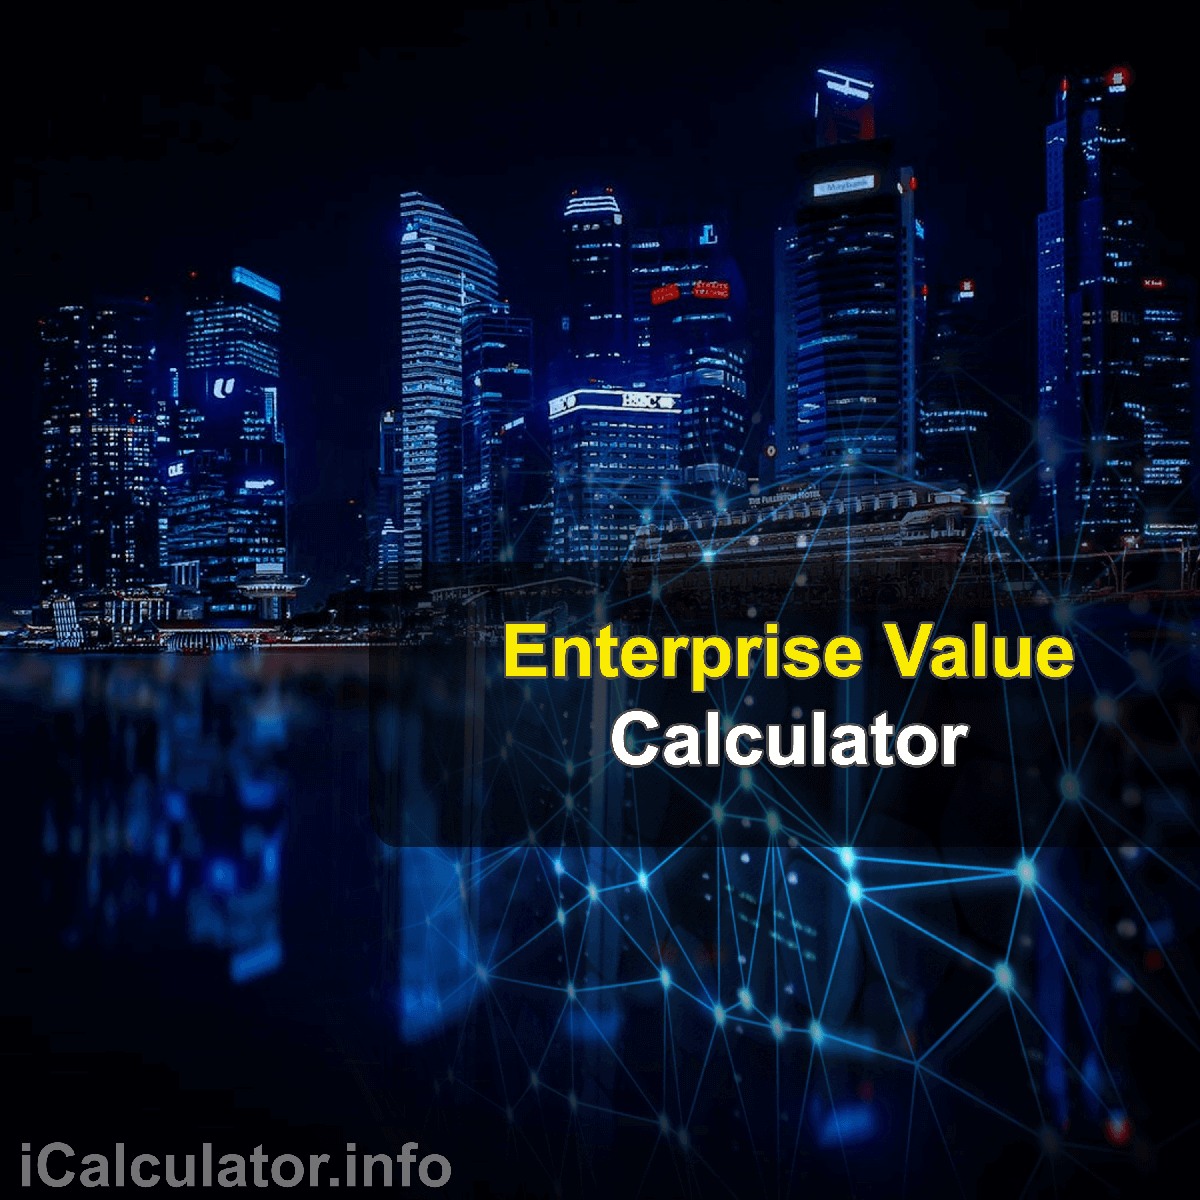 Enterprise Value Calculator. This image provides details of how to calculate enterprise value using a good calculator and notepad. By using the enterprise value formula, the Enterprise Value Calculator provides a true calculation of the value a company as a whole rather than just focusing on its current market capitalization. This shows a real value that gives a clearer picture of a company's worth to investors.